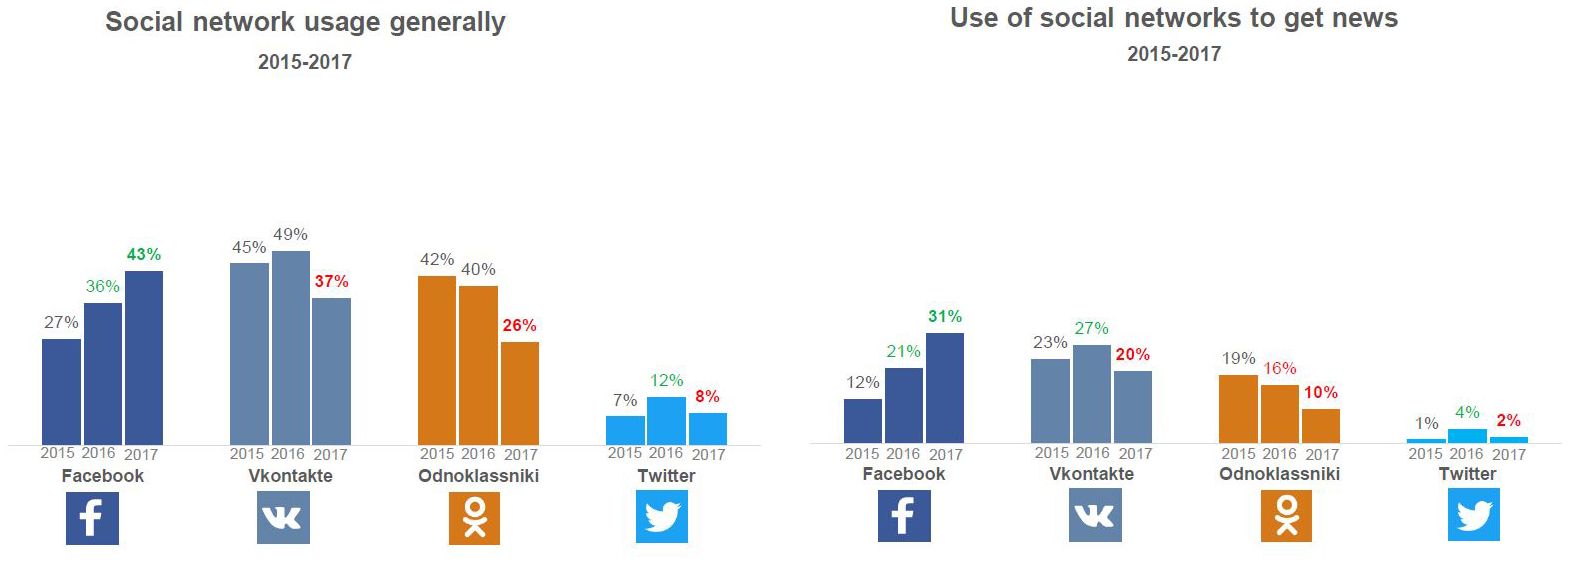 Social network useage generally and Use of social networks to get news